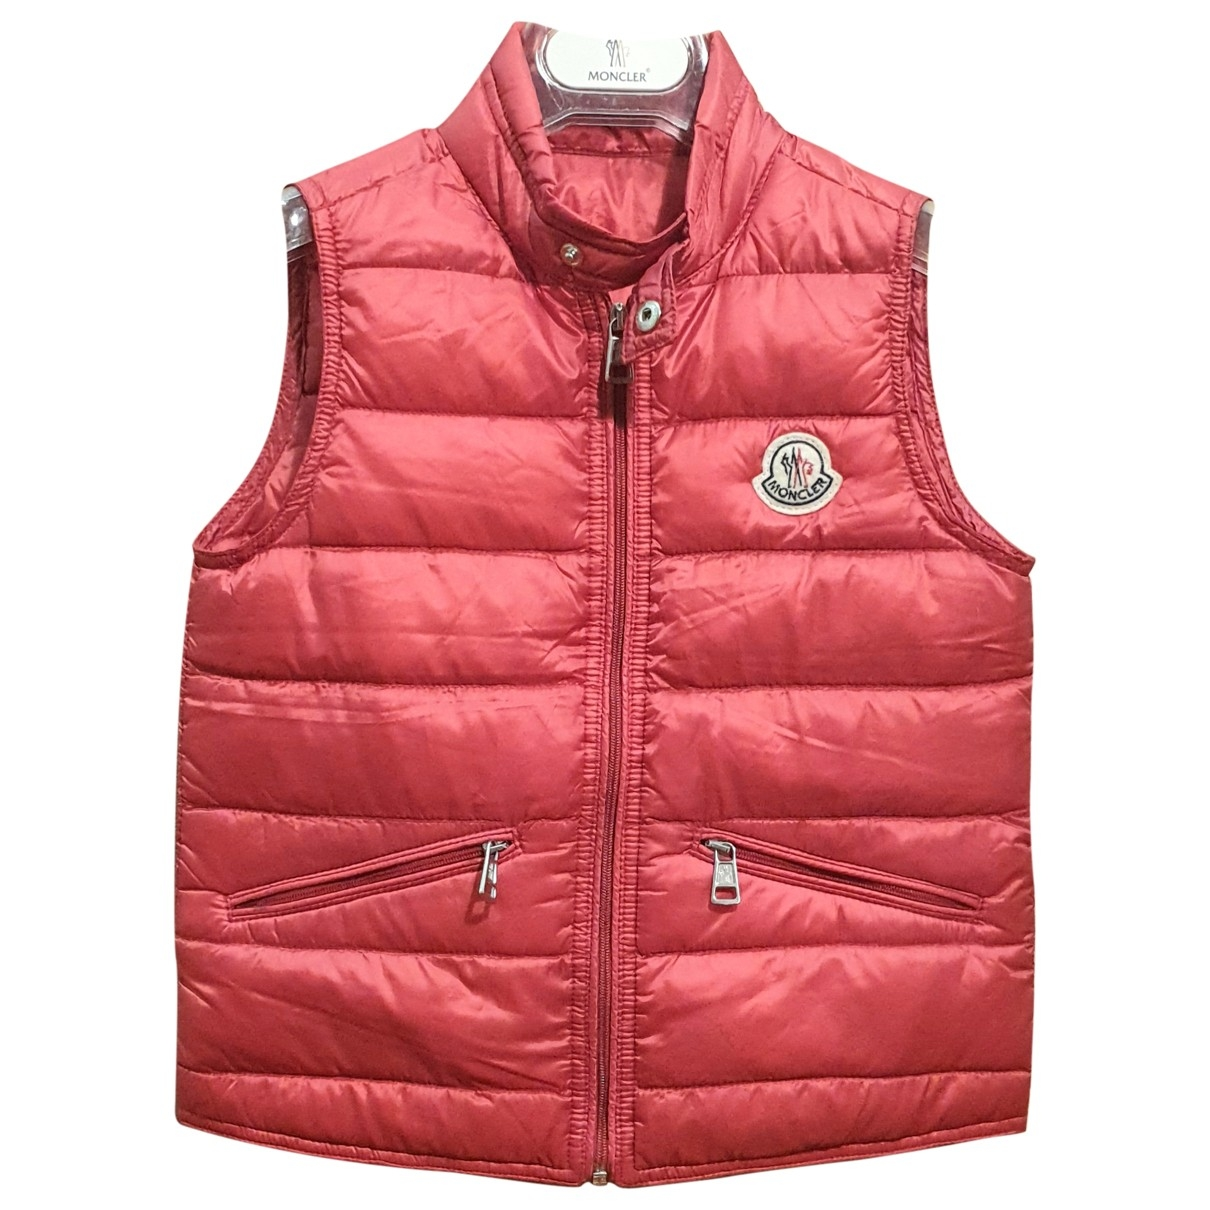 Moncler Sleeveless Red jacket & coat for Kids 6 years - up to 114cm FR